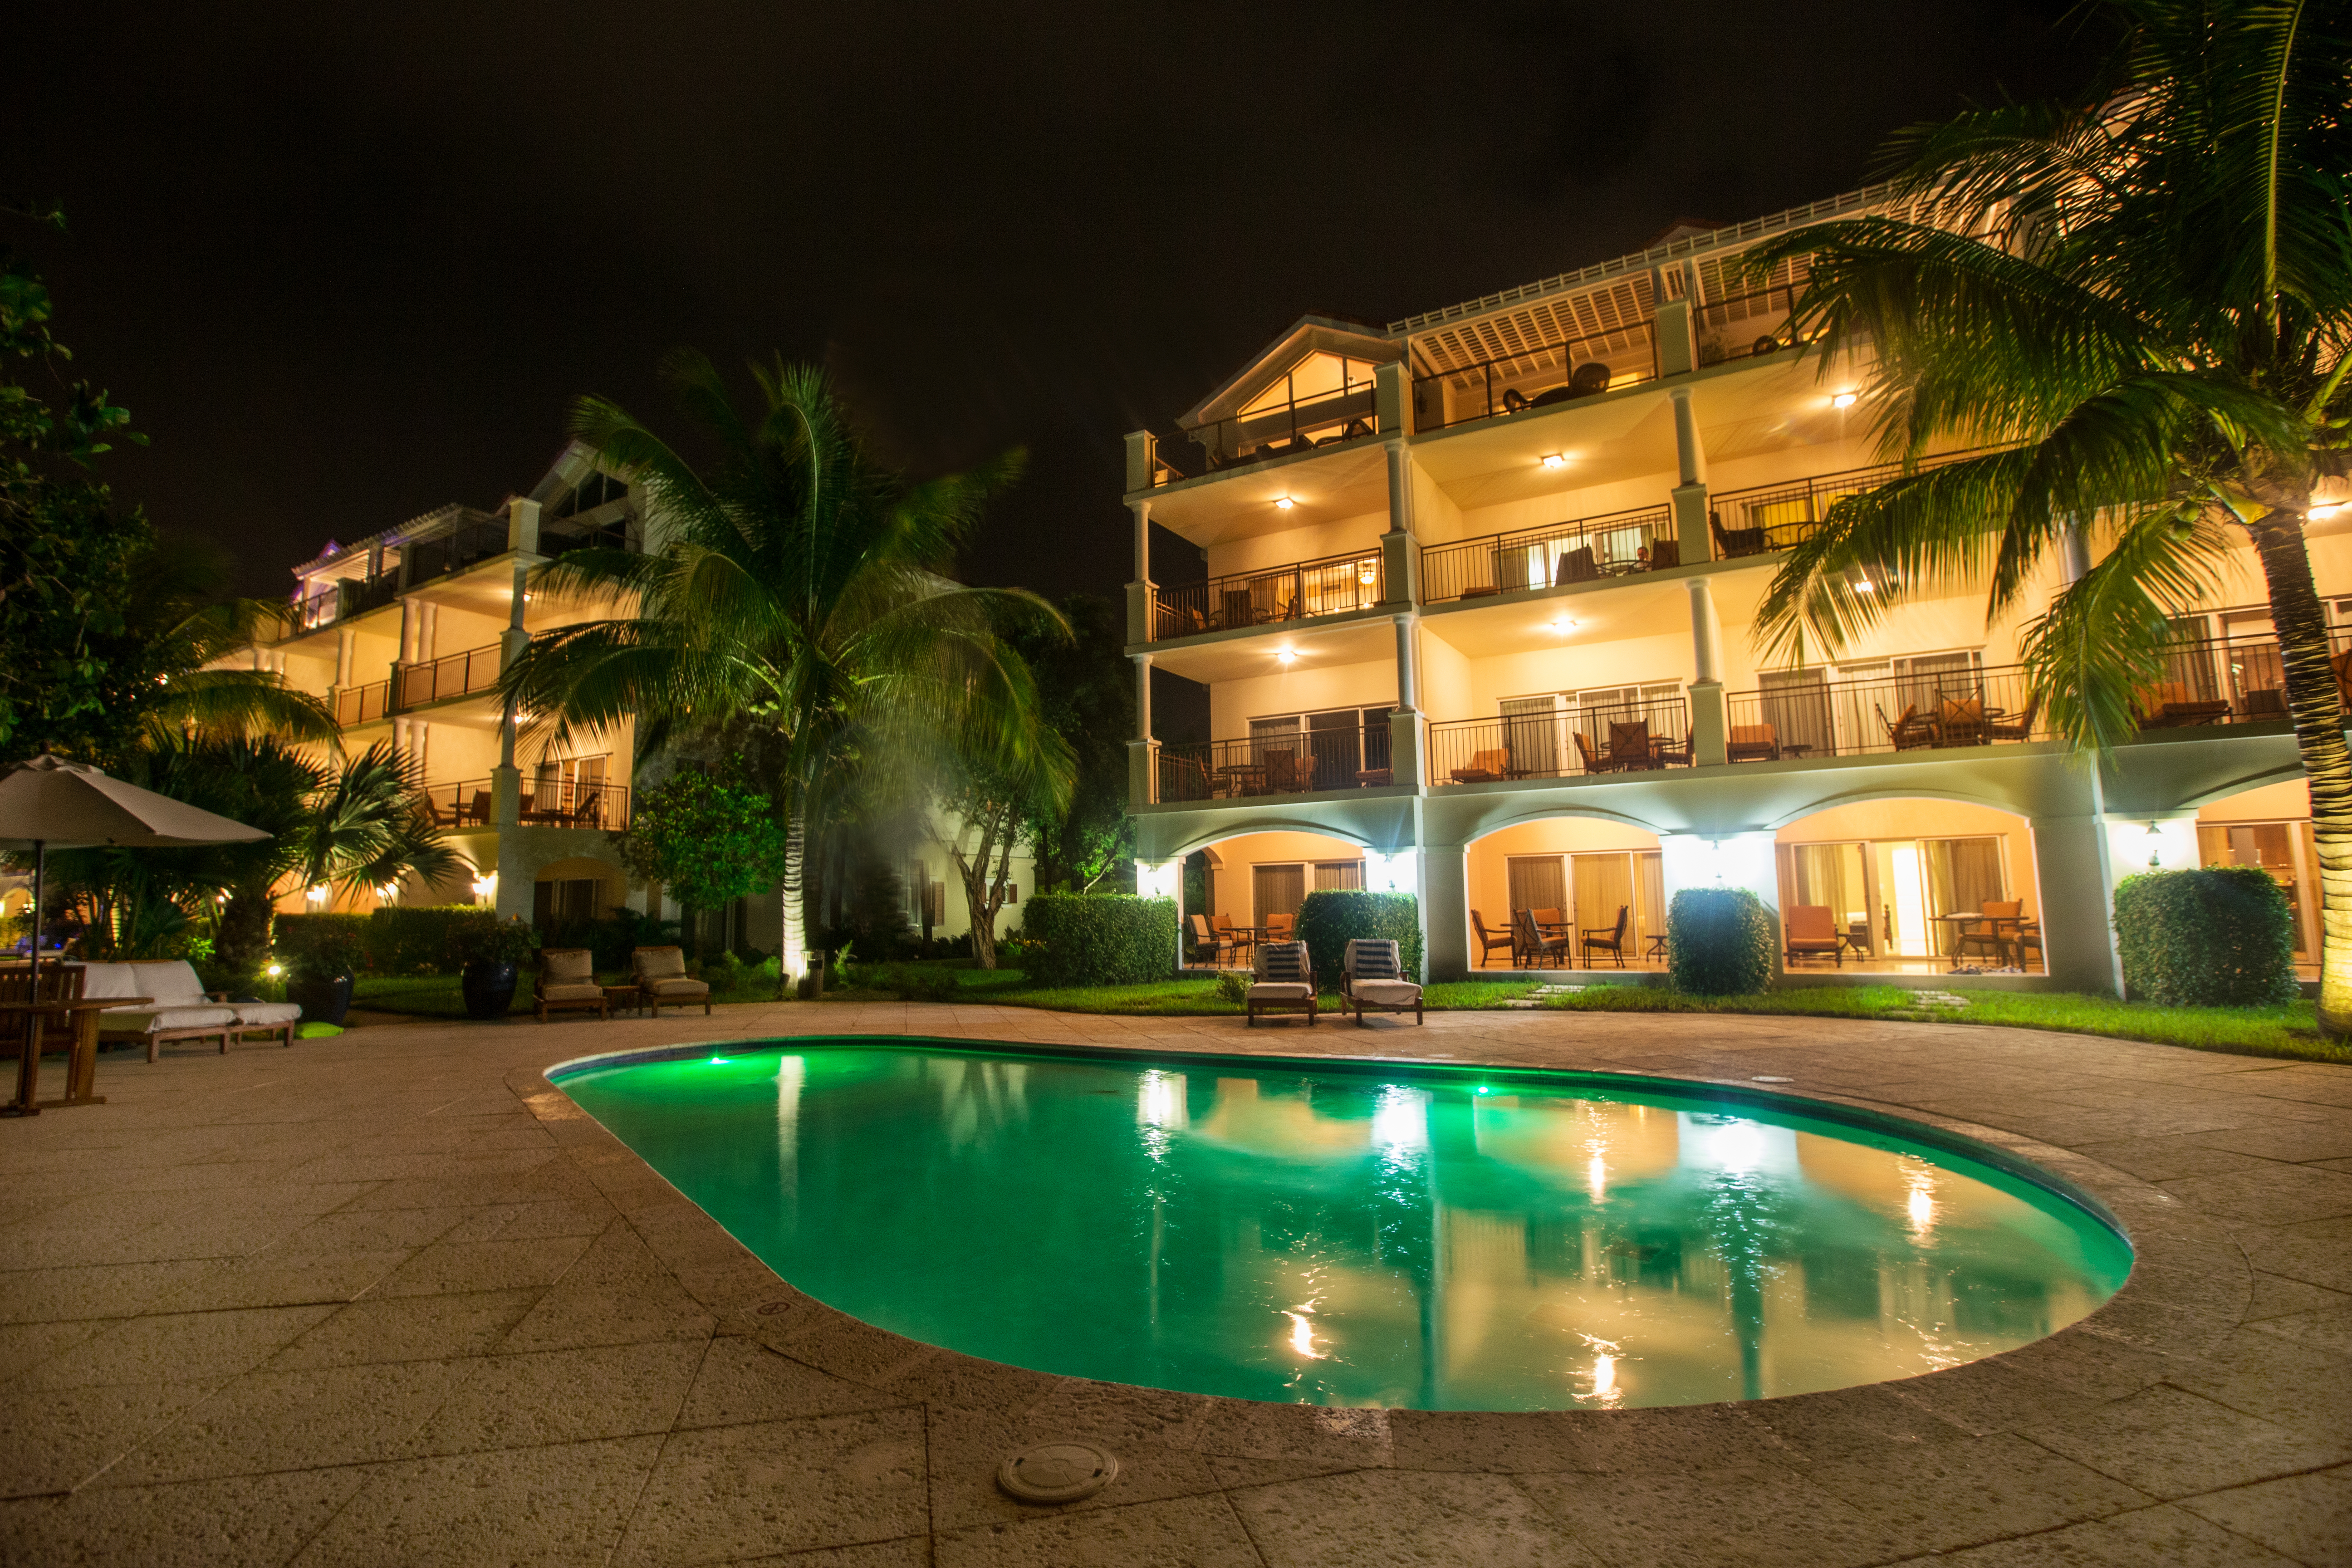 Villa del Mar integrates indoor and outdoor living with a list of superior features and amenities